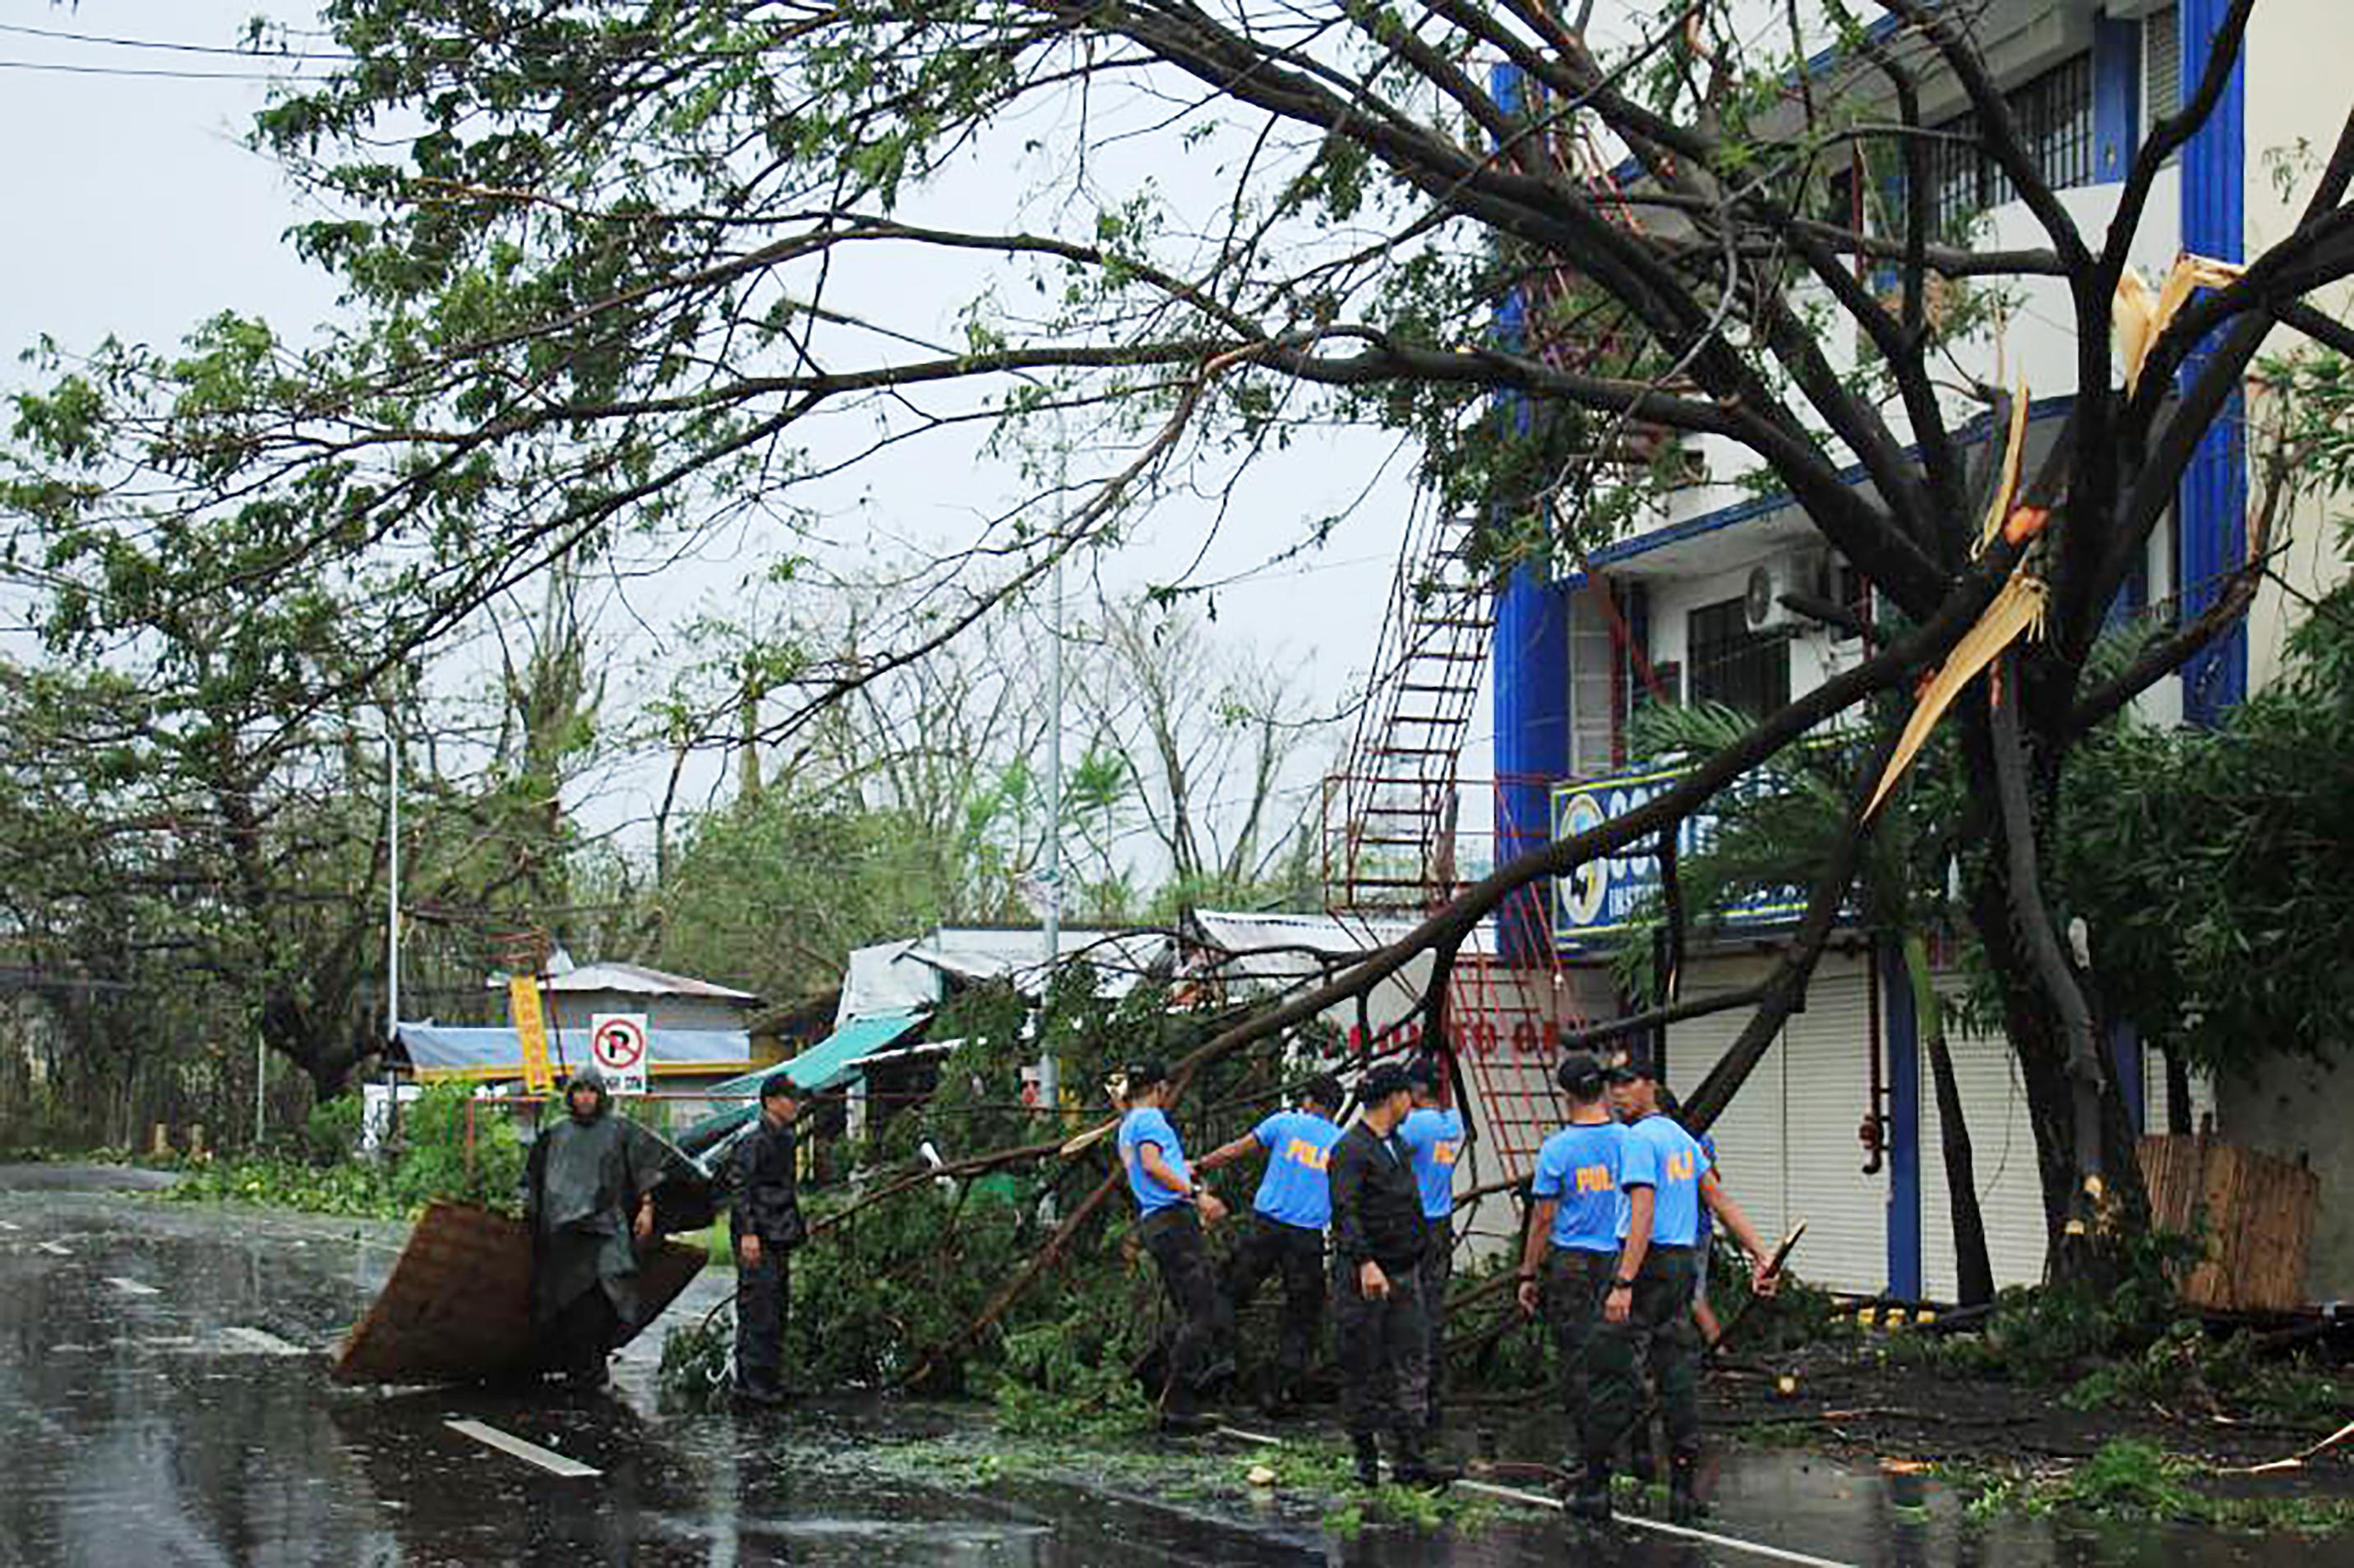 Policemen remove branches from a damaged tree following the passage of Typhoon Kammuri in Legaspi City, Albay province, south of Manila on December 3, 2019. - Typhoon Kammuri lashed the Philippines with fierce winds and heavy rain, as hundreds of thousands took refuge in shelters and the capital Manila prepared to shut down its international airport over safety concerns. (Photo by RAZVALE SAYAT / AFP) (Photo by RAZVALE SAYAT/AFP via Getty Images)